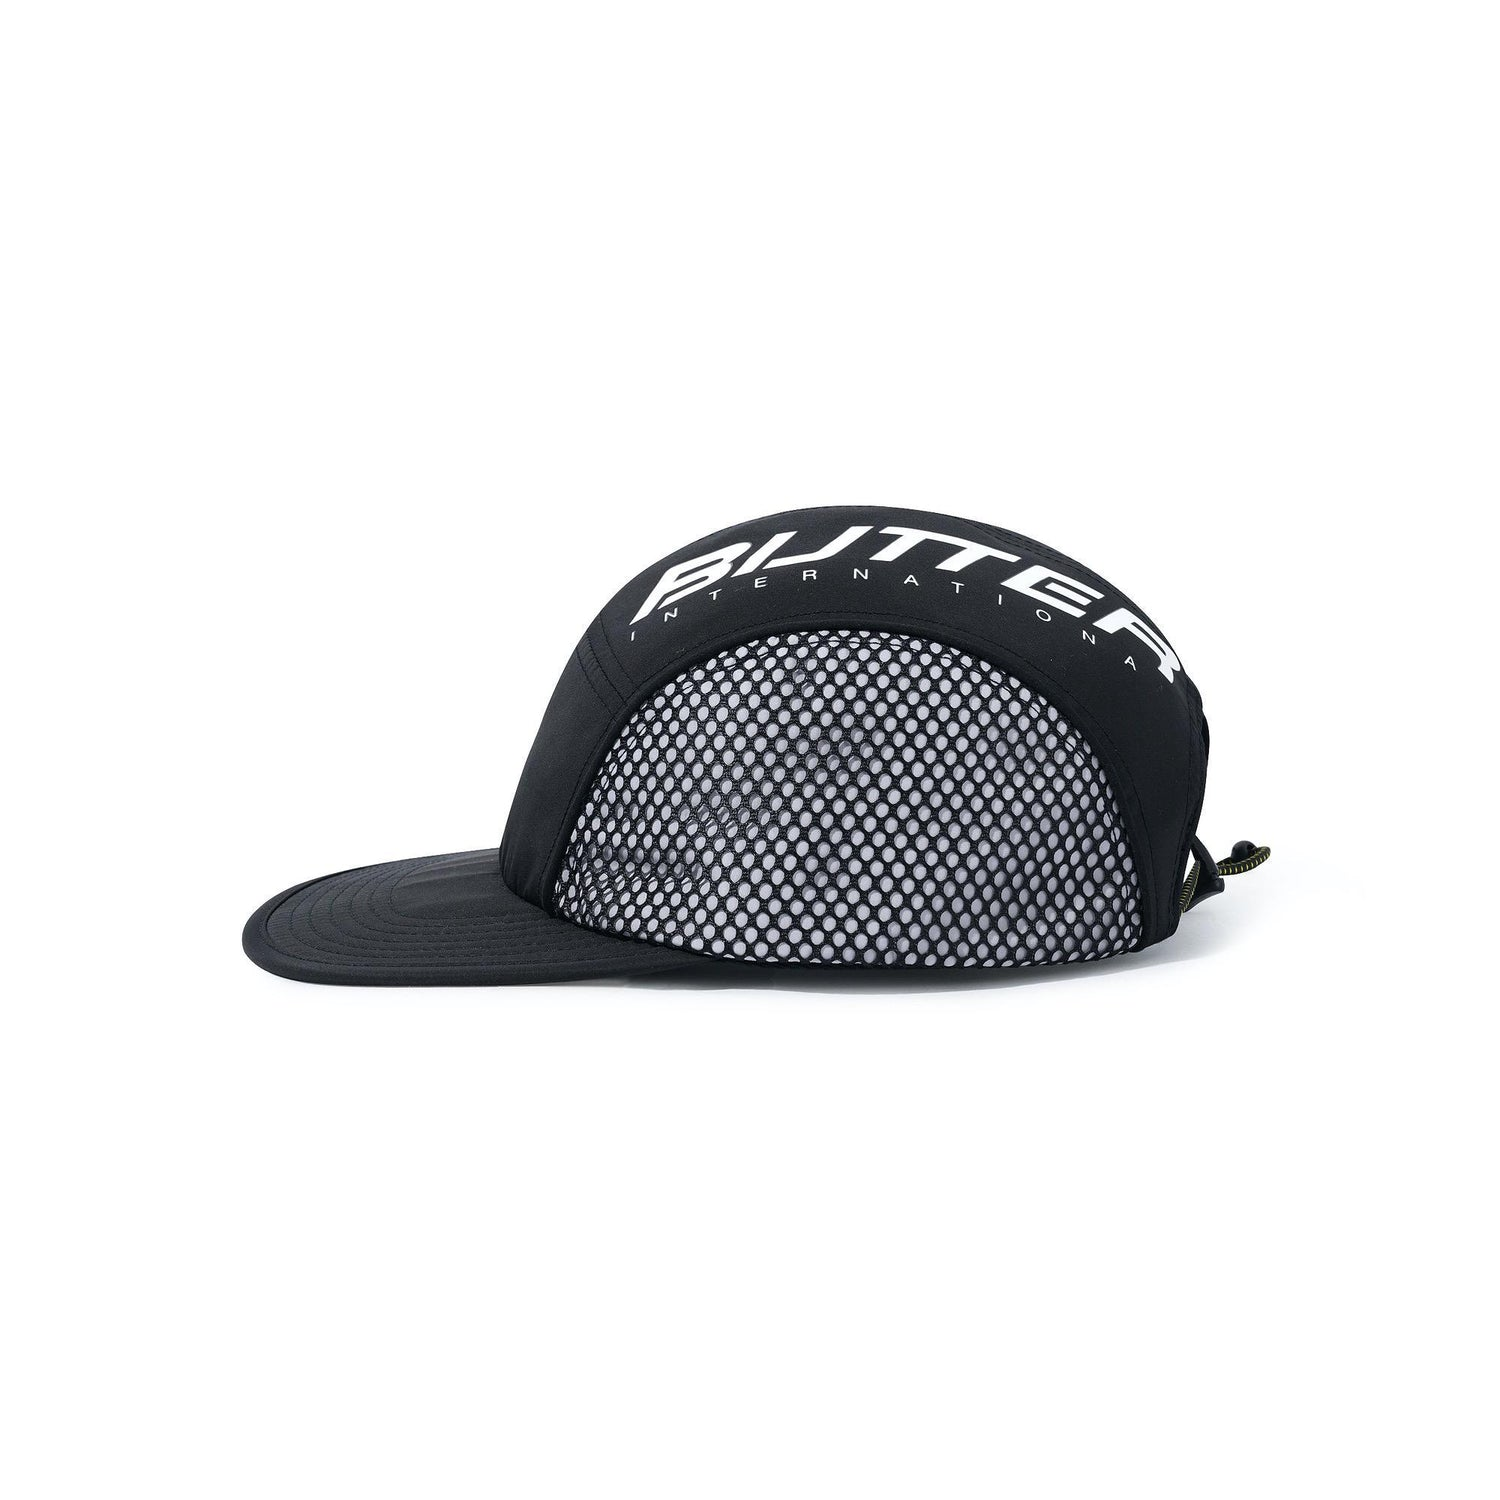 International Camp Cap, Black